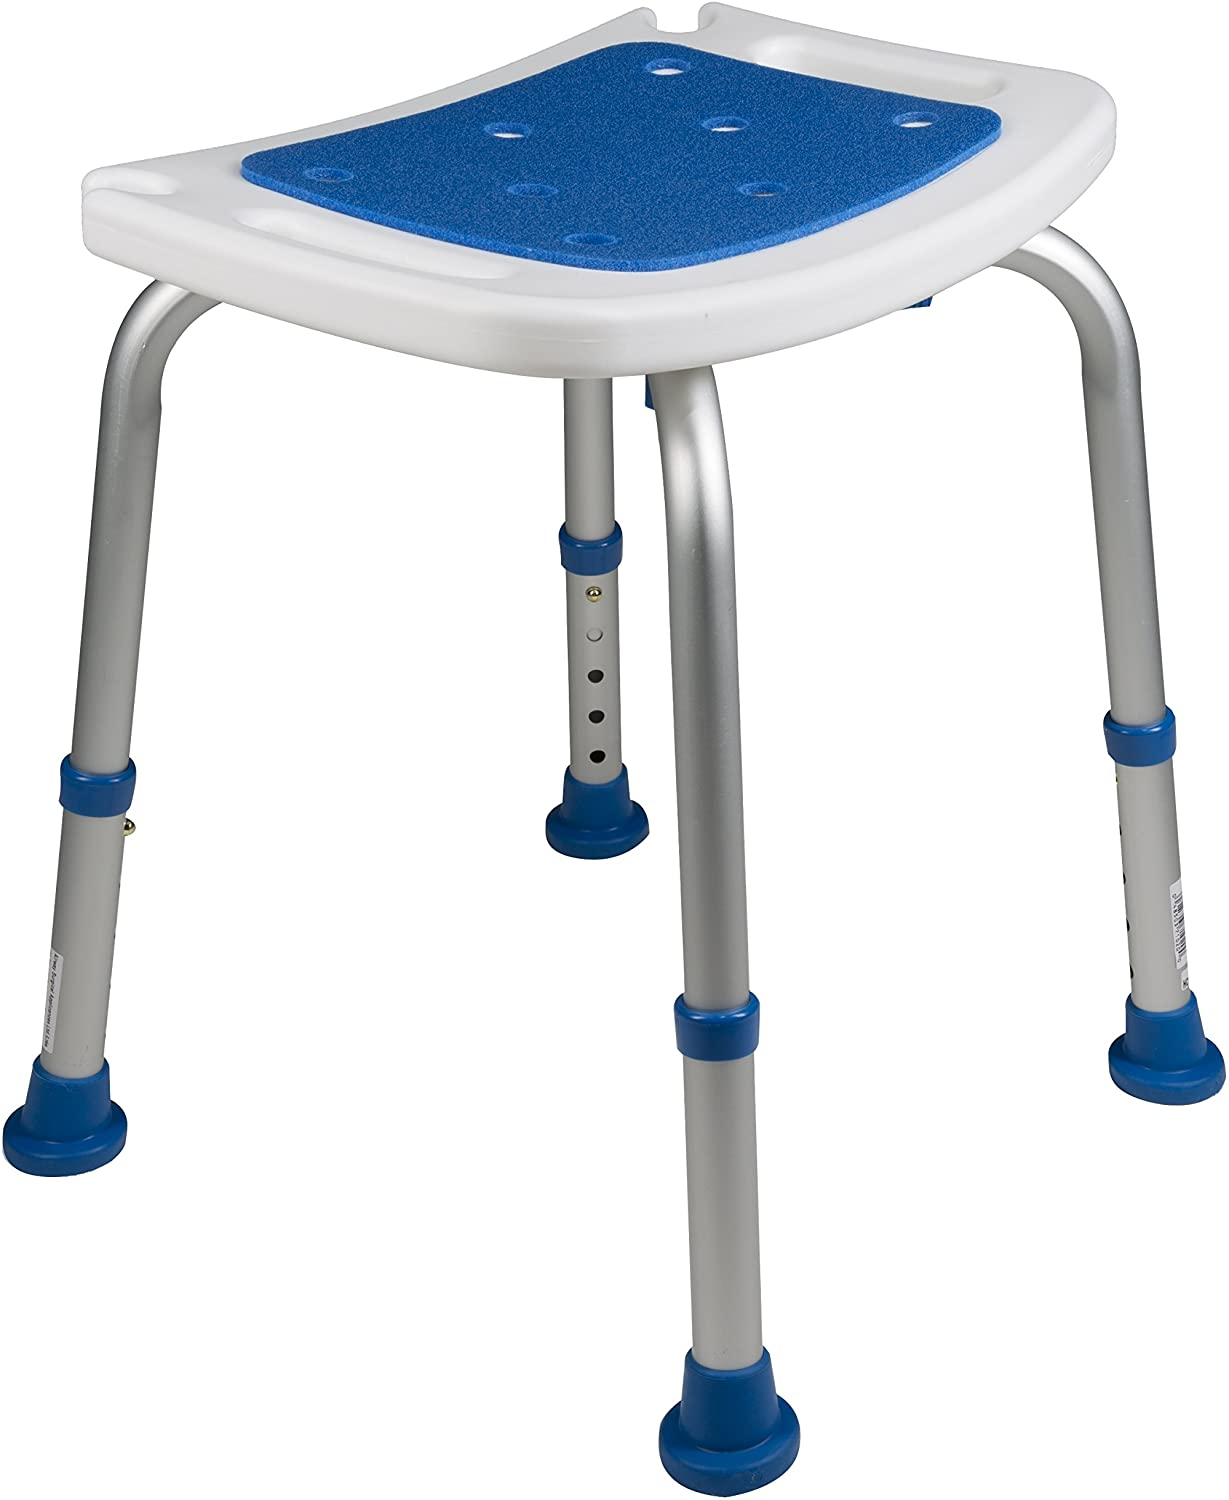 Pcp Bath Bench Shower Chair Safety Seat, Adjustable Height, Stability Grip Traction, Medical Grade Senior Living Spa Aid, Mobility Recovery Support, White/Blue: Health & Personal Care